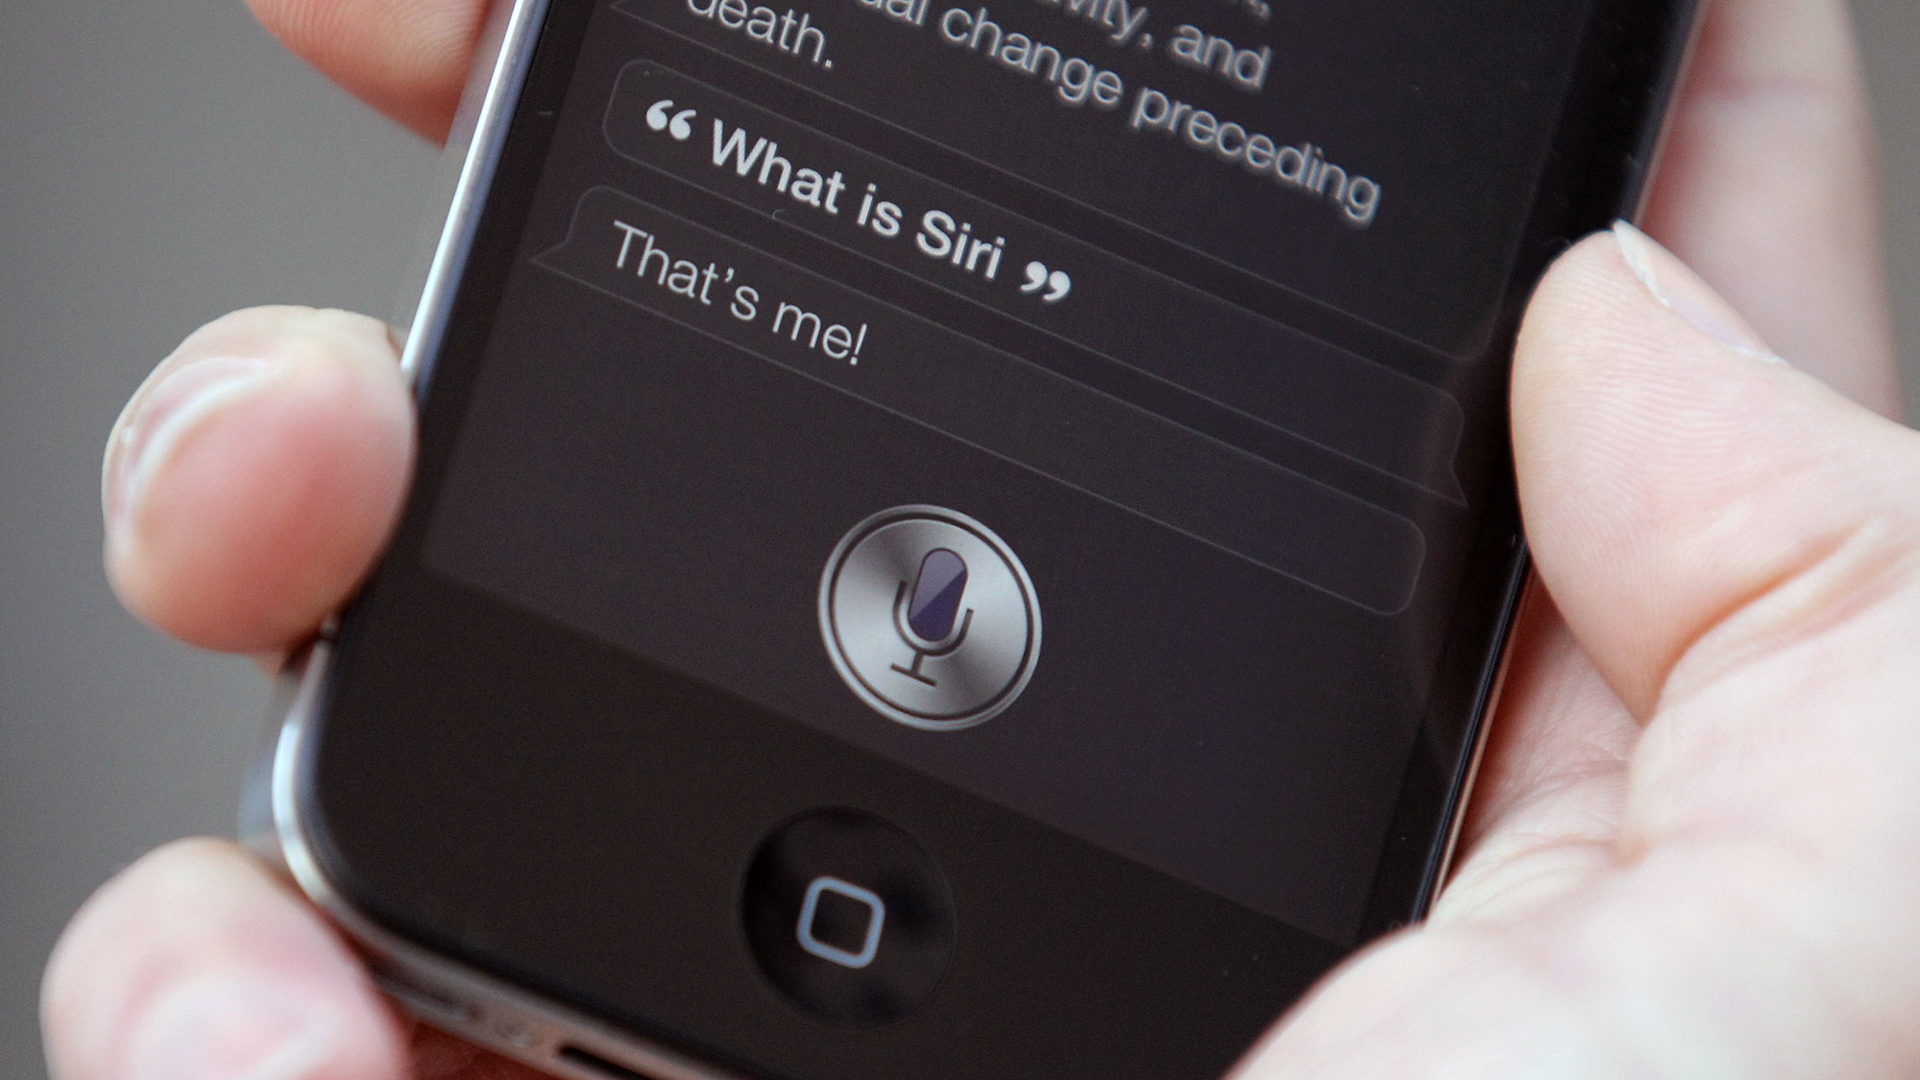 Siri on an iPhone-159532.jpg32752459